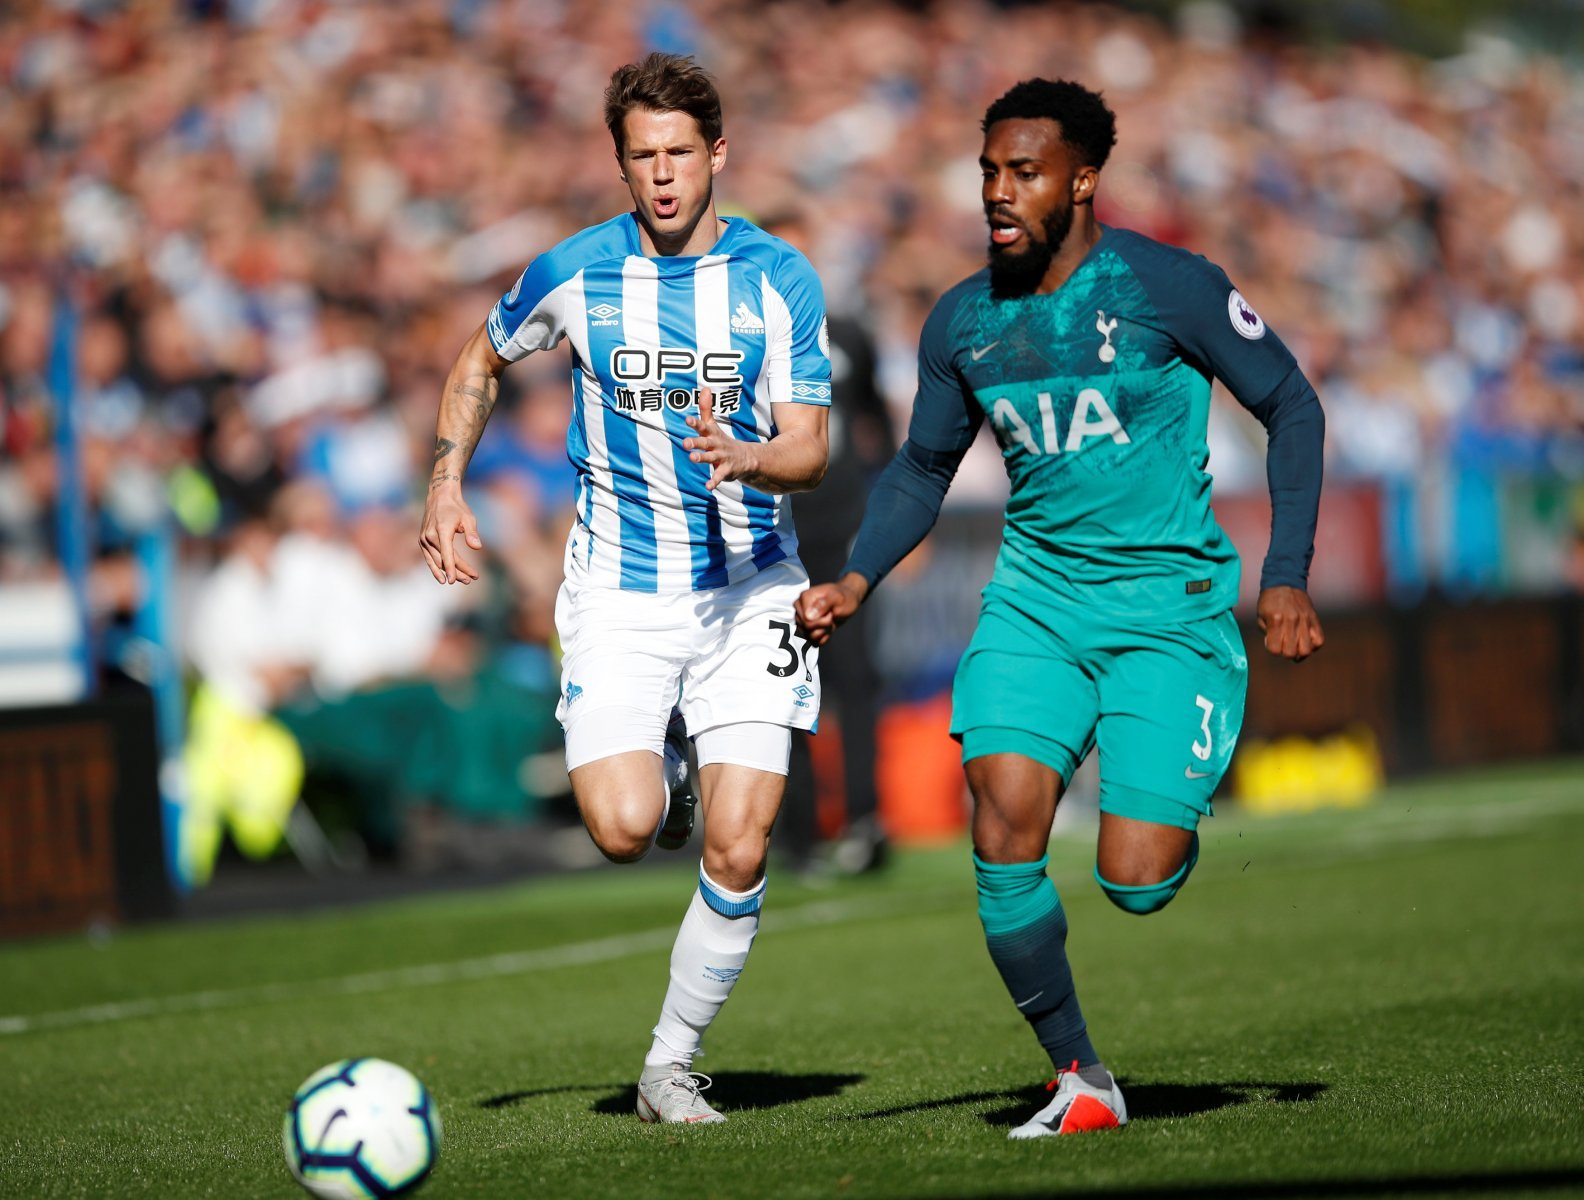 Tottenham Hotspur: Spurs fans upset that PSG are linked with Danny Rose